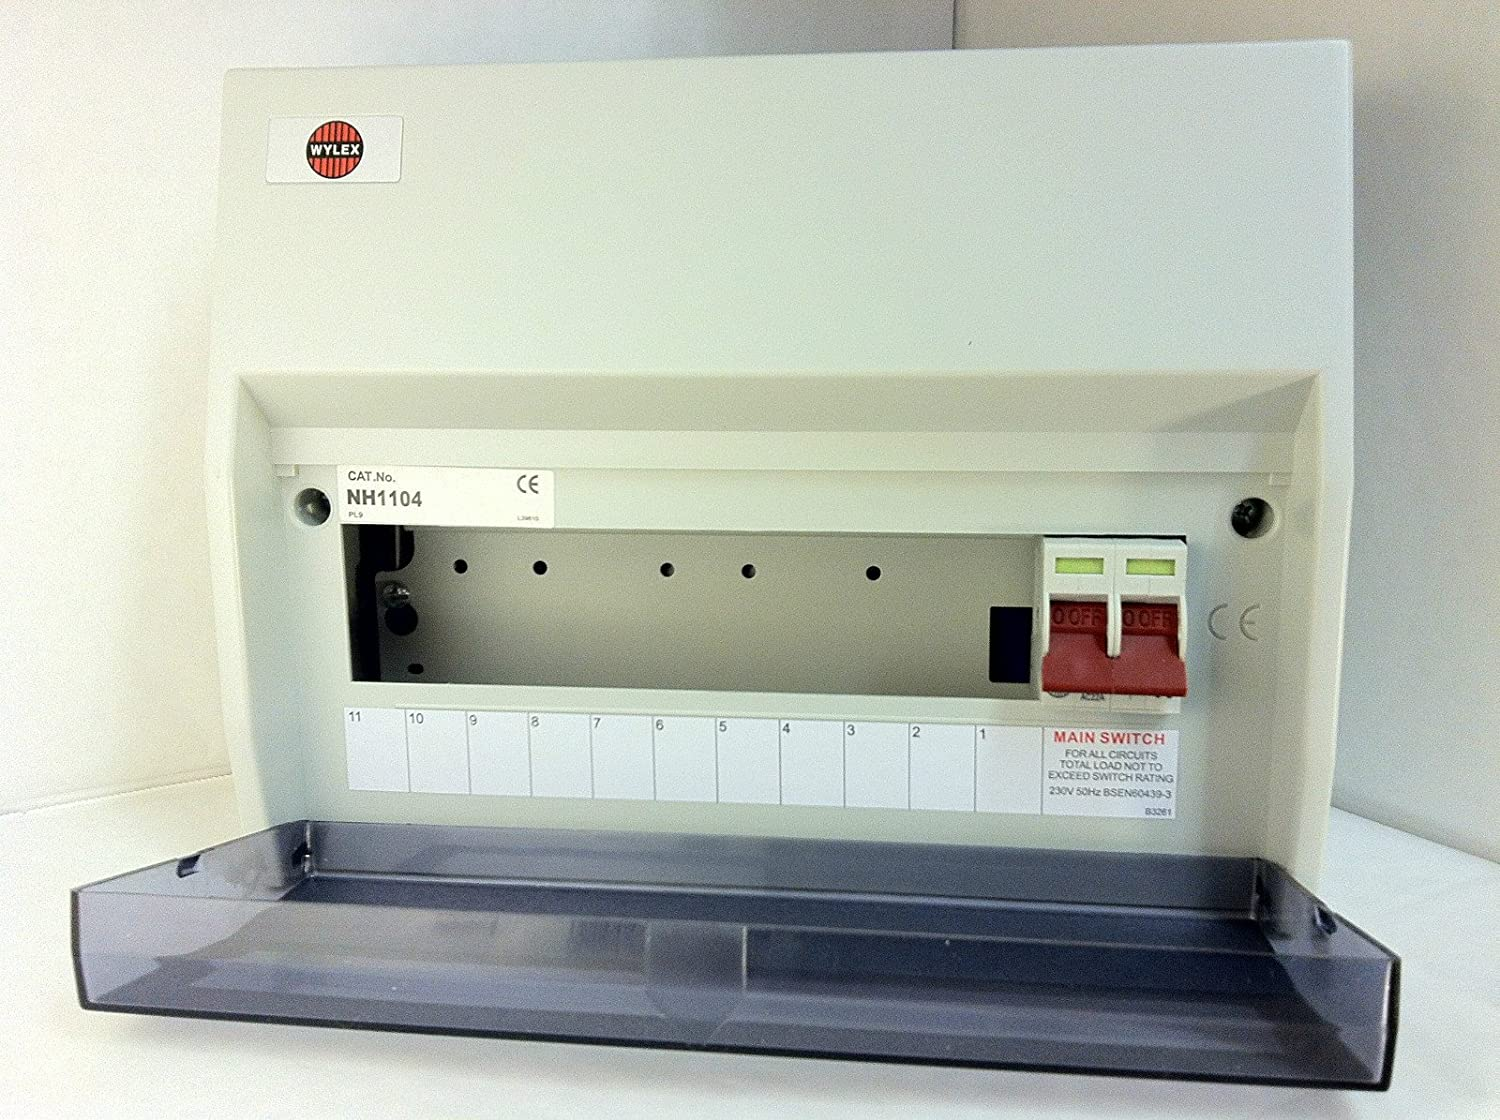 Wylex NH1104 - 11 Way Consumer Unit with 100A Main Switch Incomer -  Insulated: Amazon.co.uk: Lighting